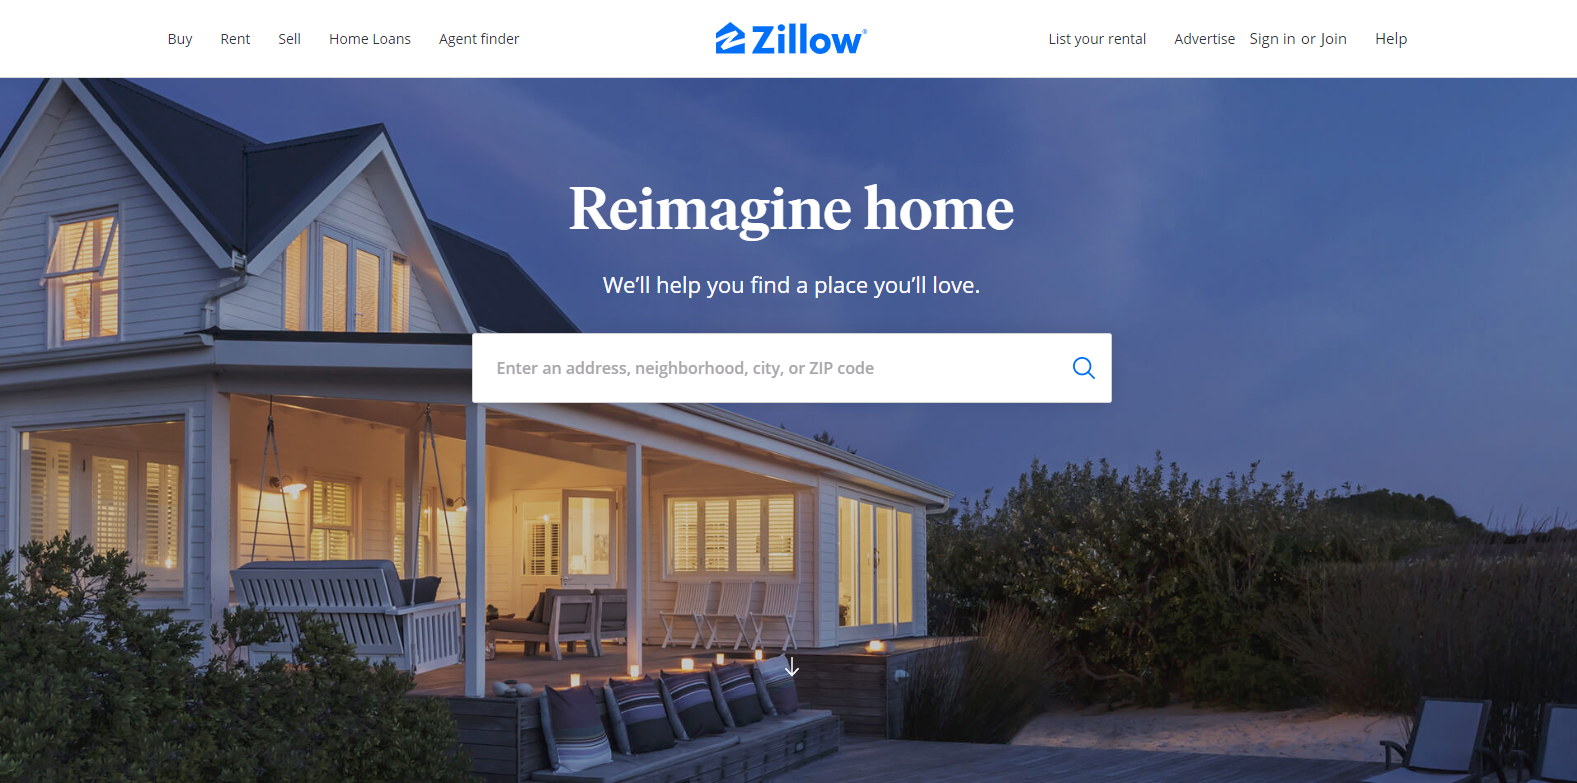 Zillow Homes Could Be A Home Run - Zillow Group, Inc ... on zillow living room designs, zillow bedroom designs, zillow bathroom designs,